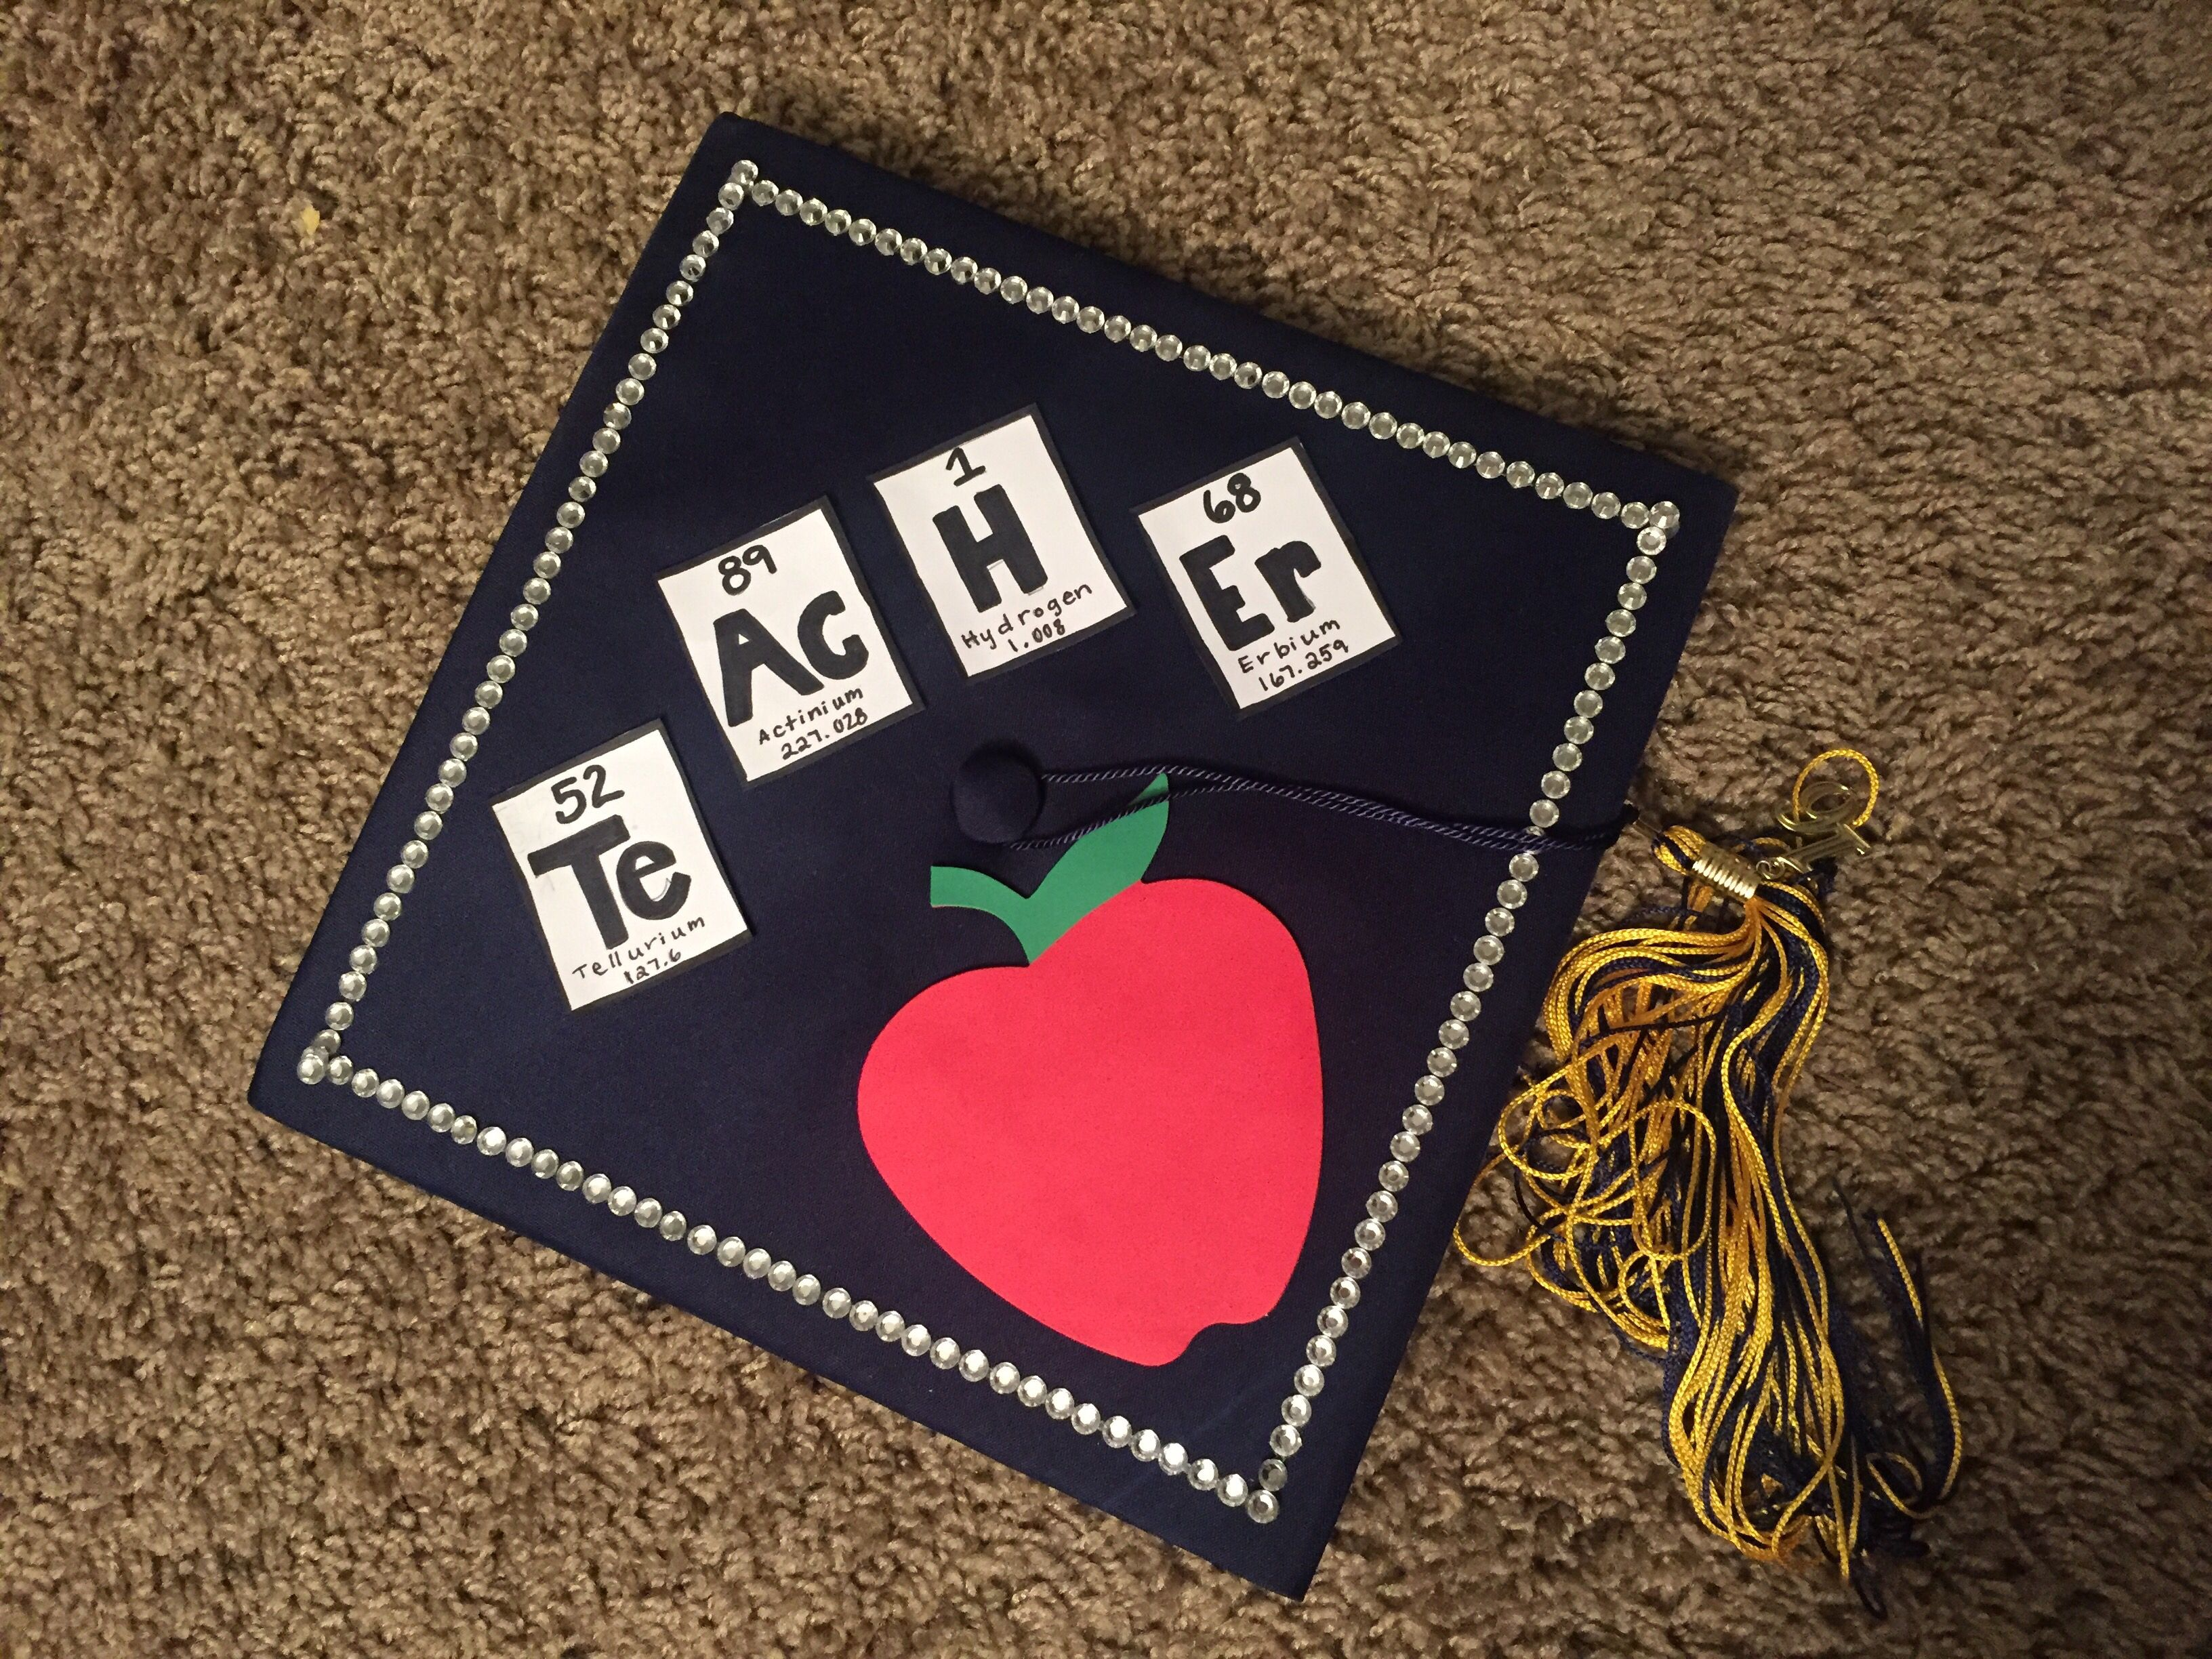 Decorating graduation cap ideas for teachers - Science Teacher Graduation Cap